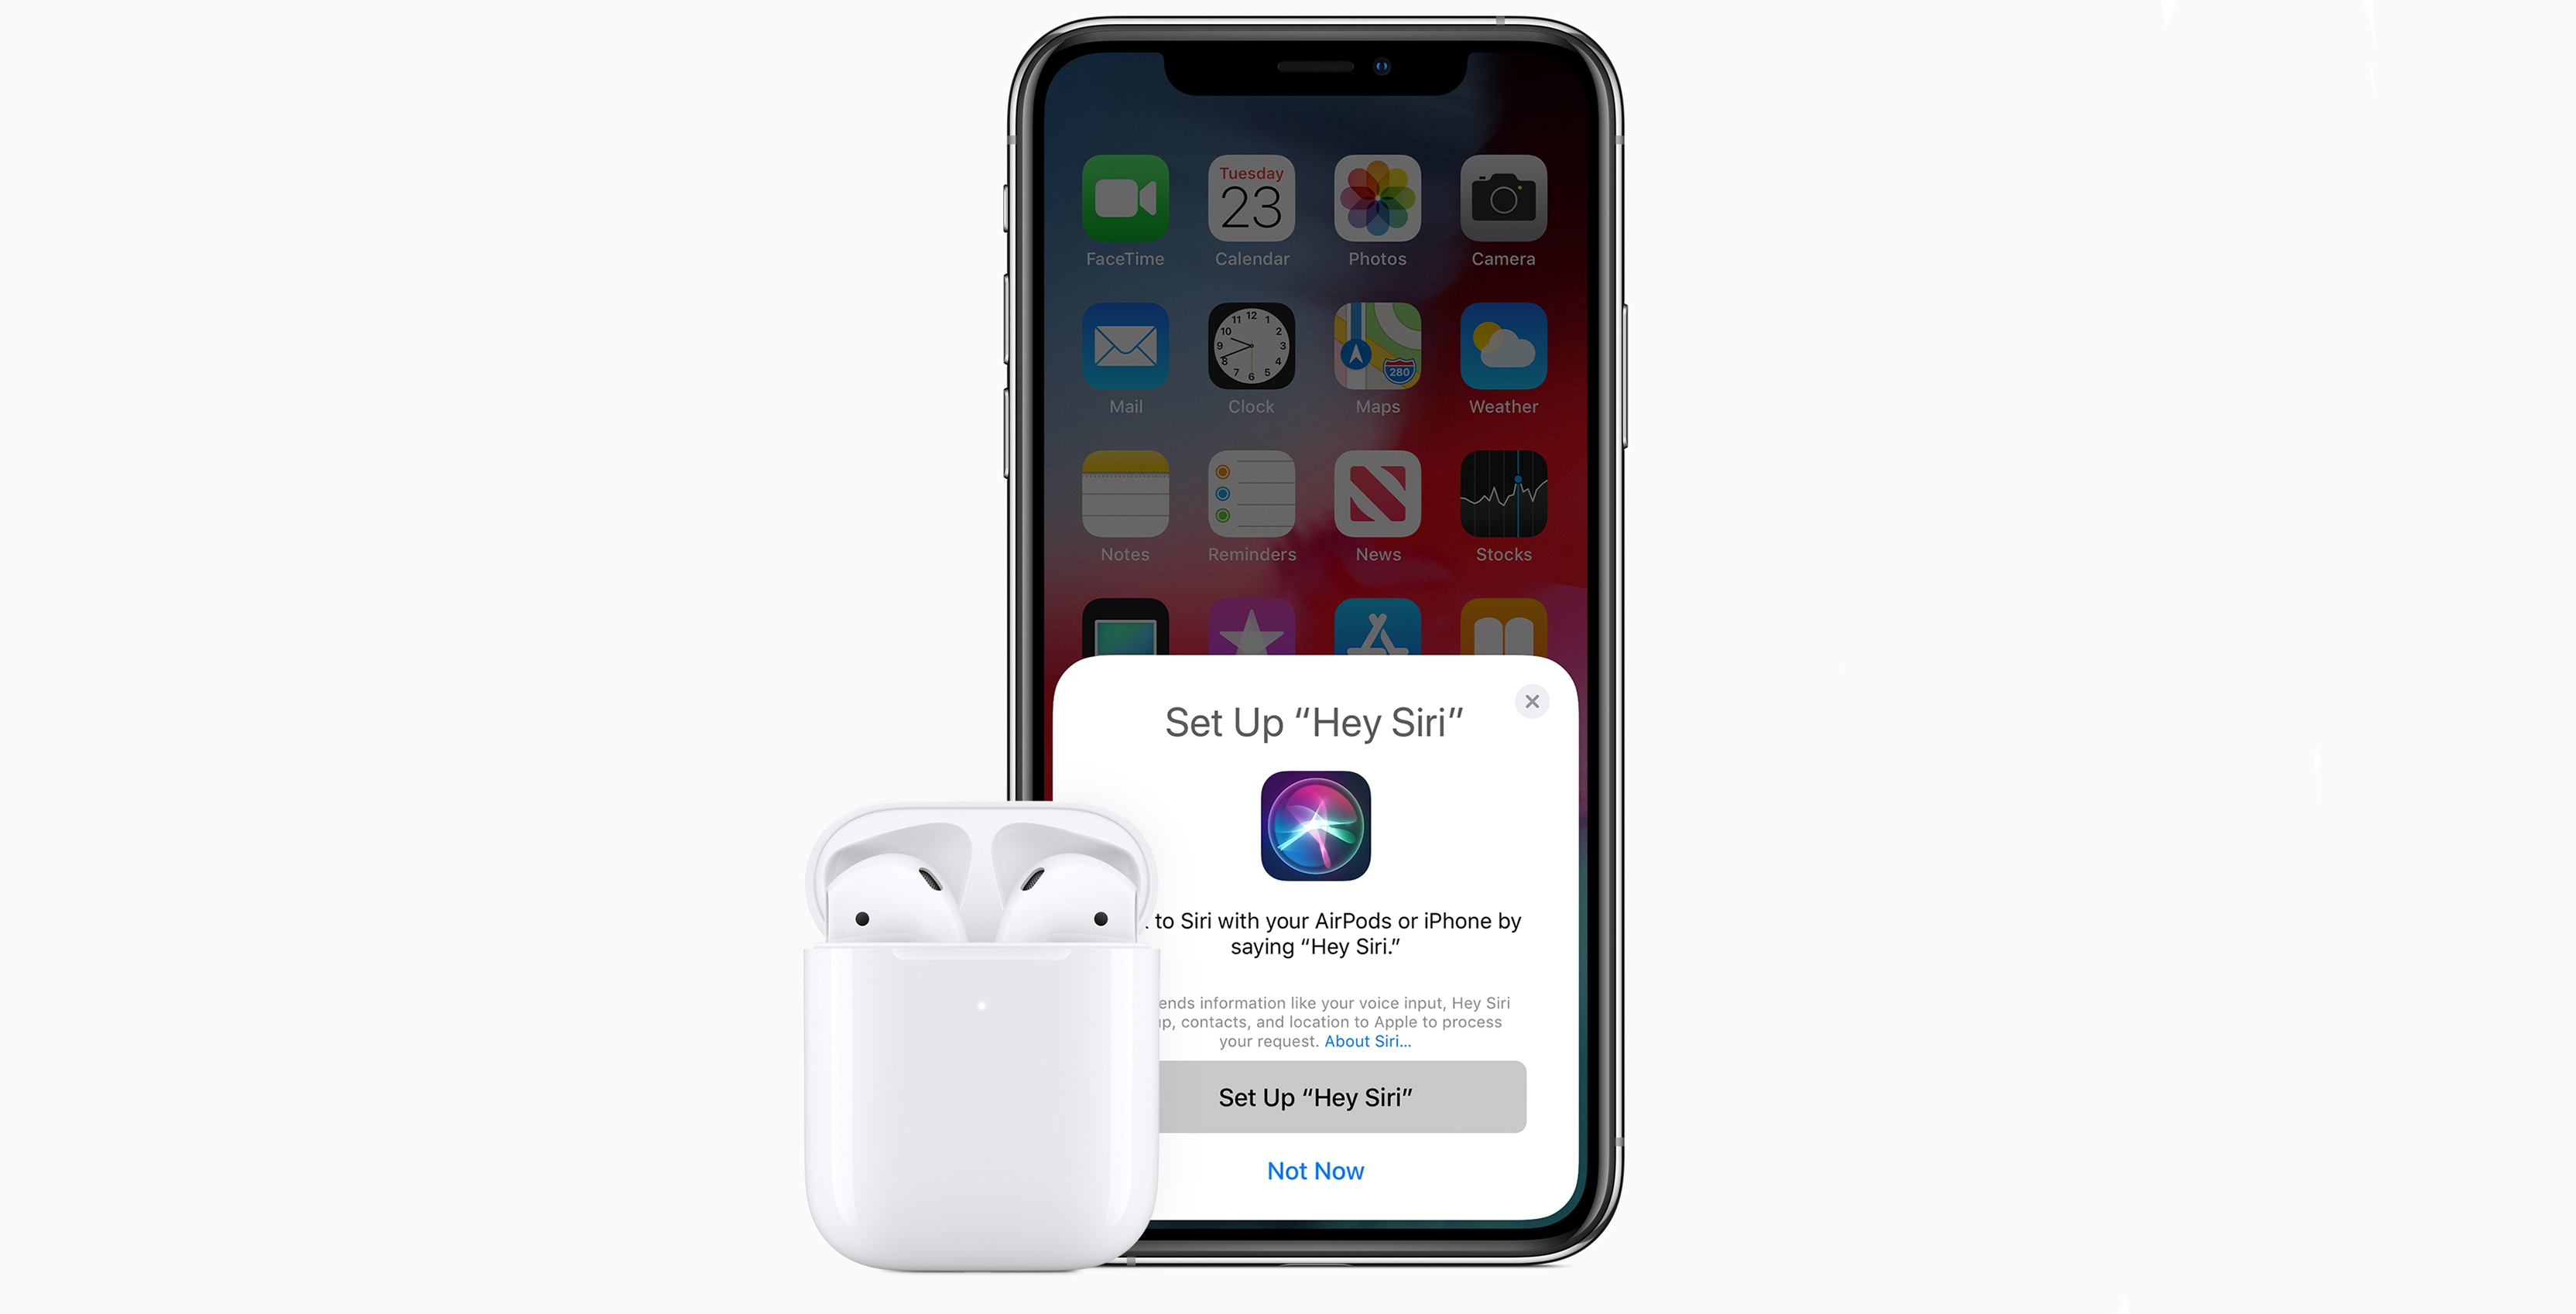 cb3cbc19331 Apple announces new AirPods with H1 chip, wireless charging case